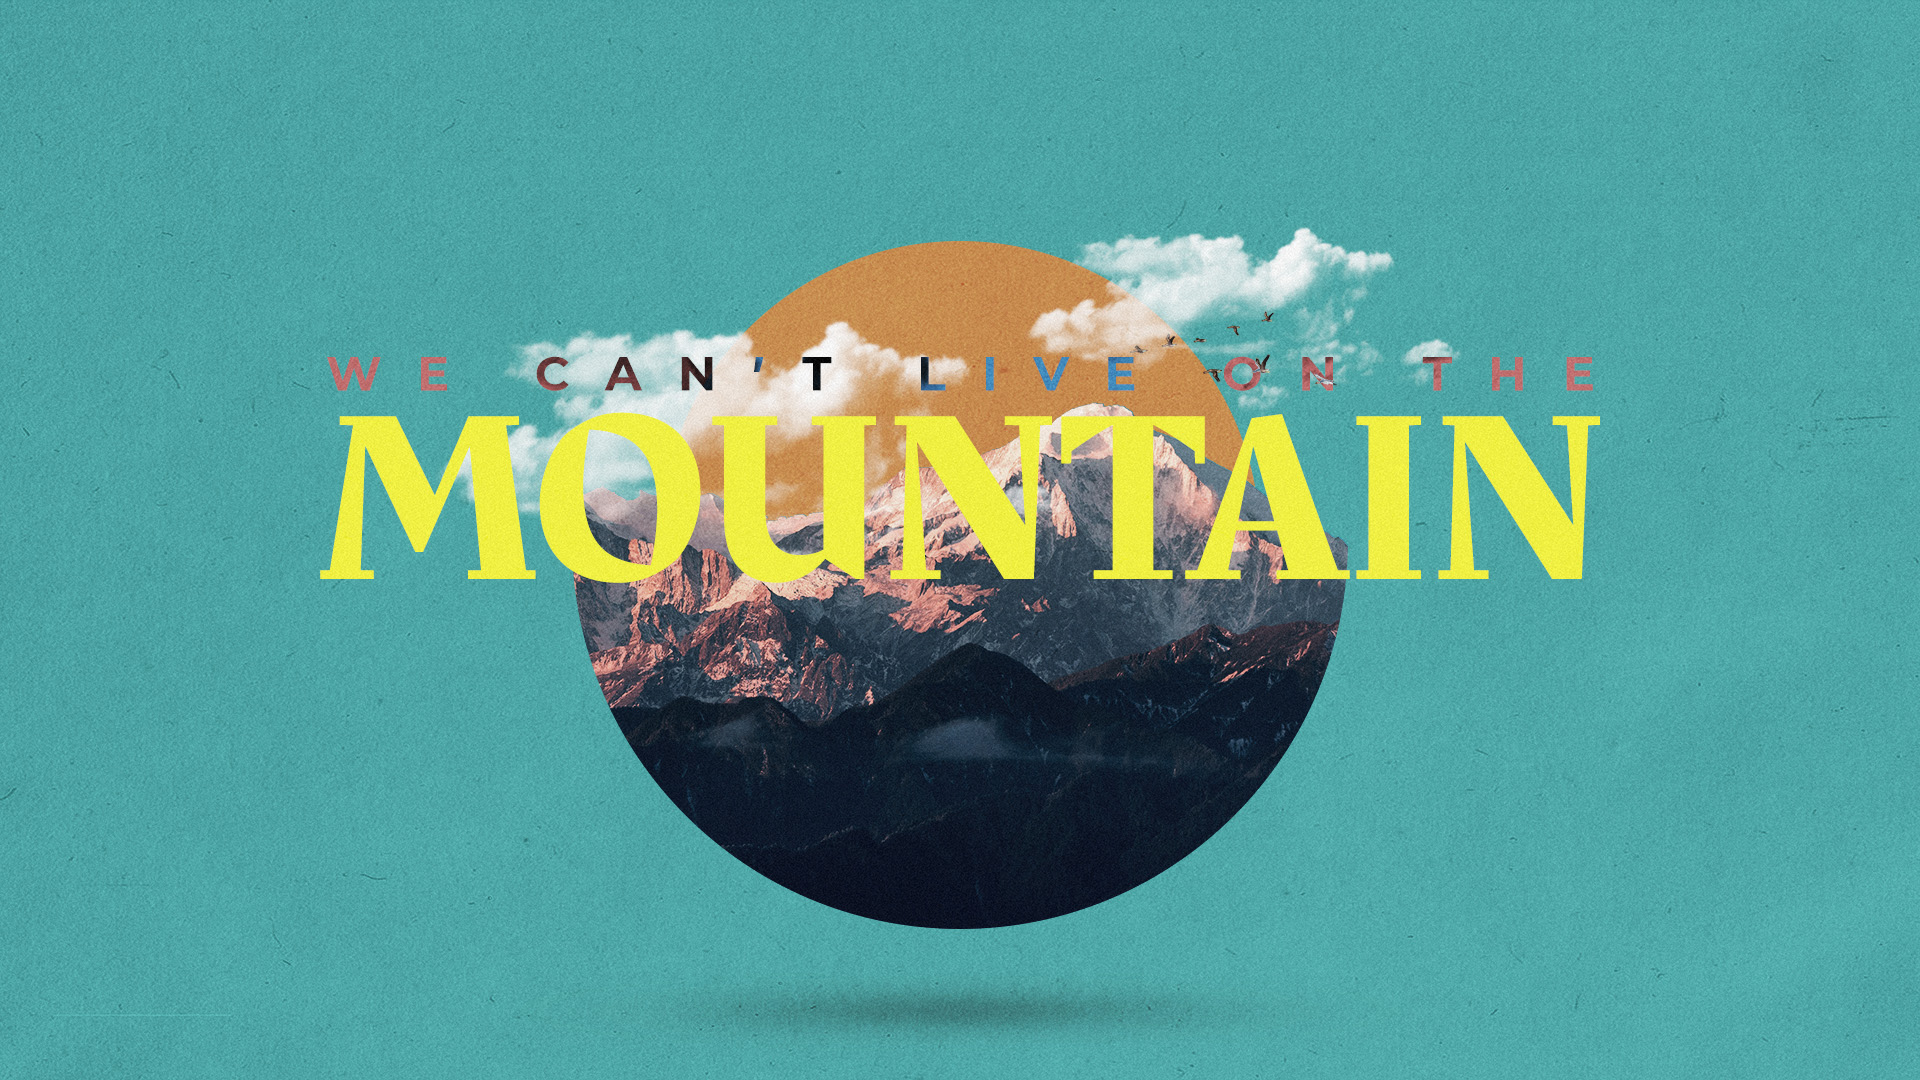 Cant-Live-on -Mountain-Main